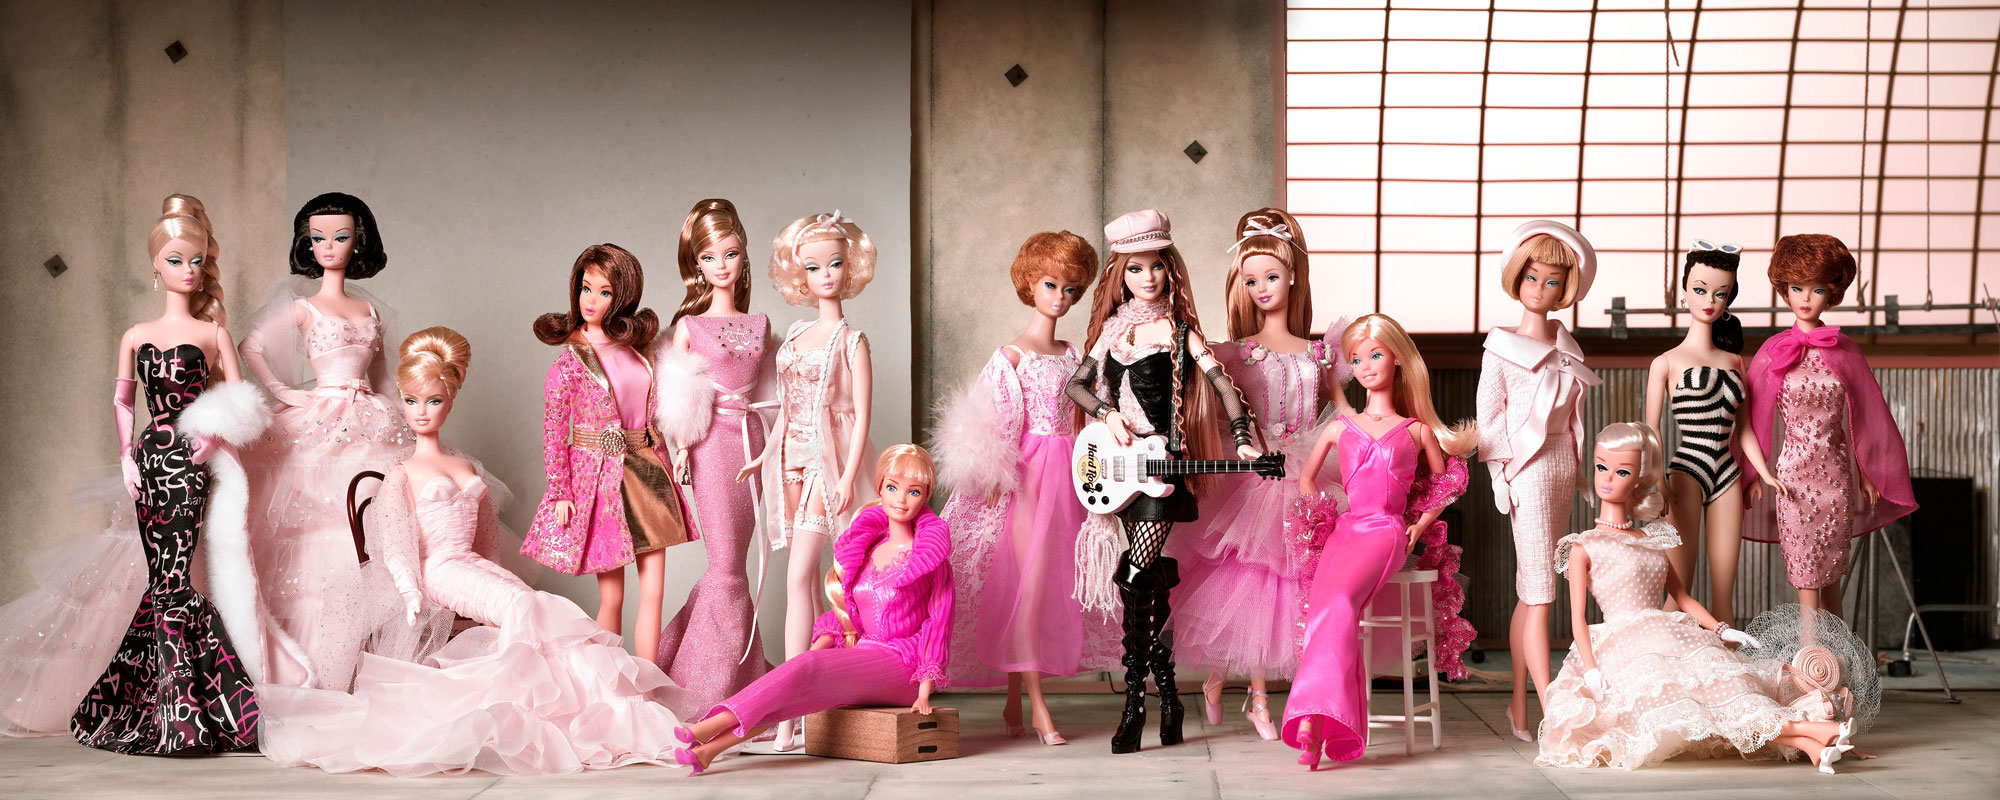 Barbie's-evolution-style-(Collectors-edition)